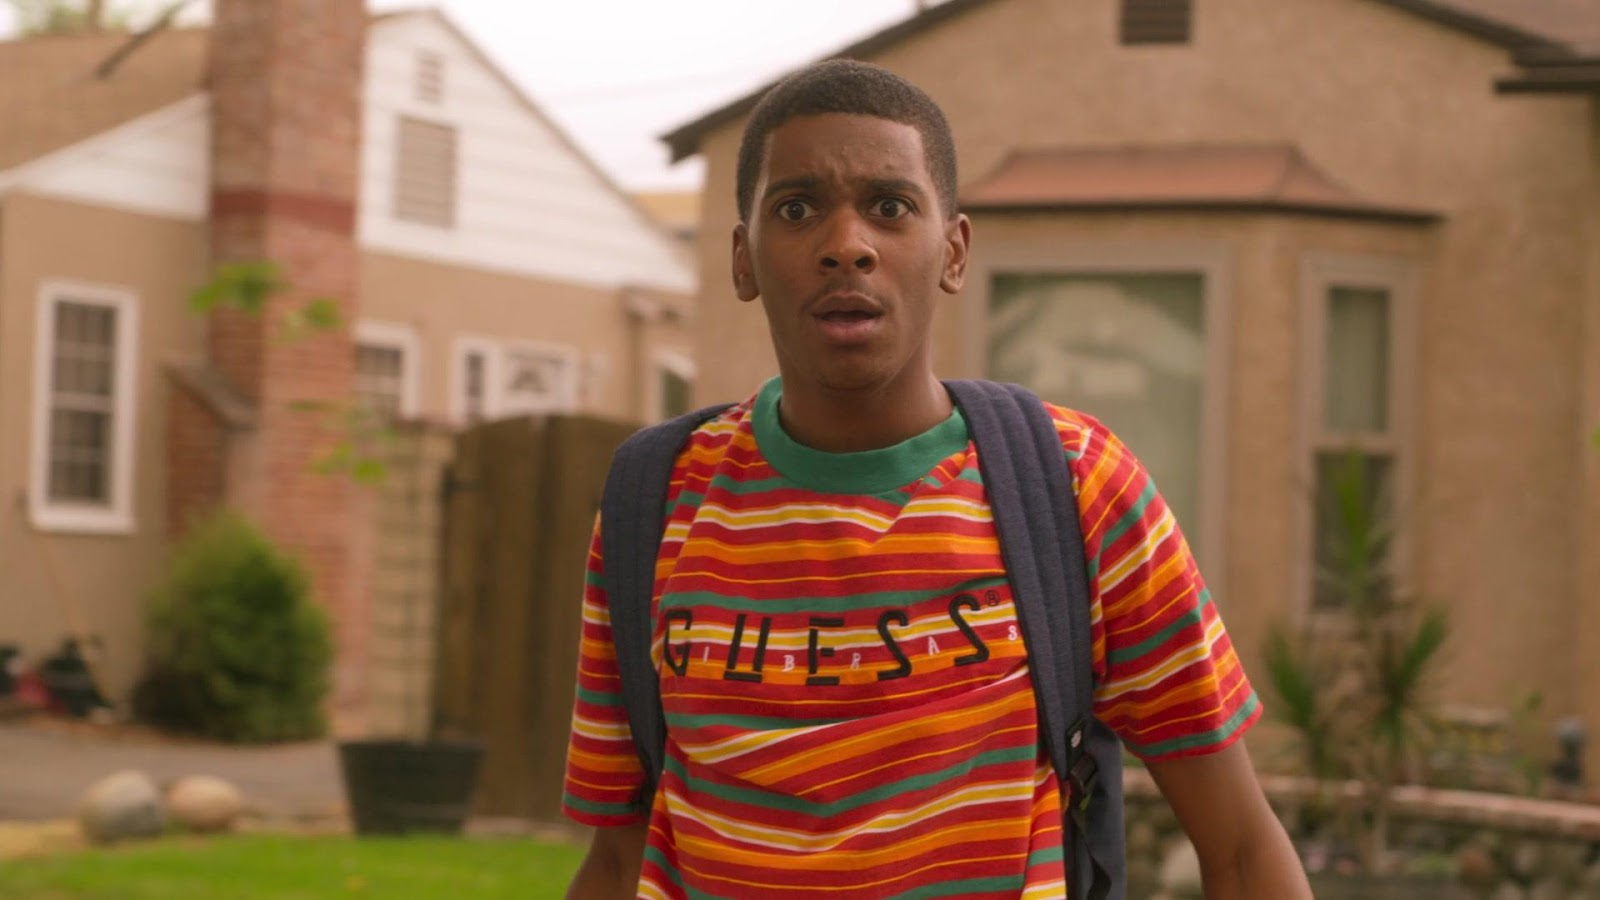 Jamal Turner from On My Block is considered to be a demisexual character.